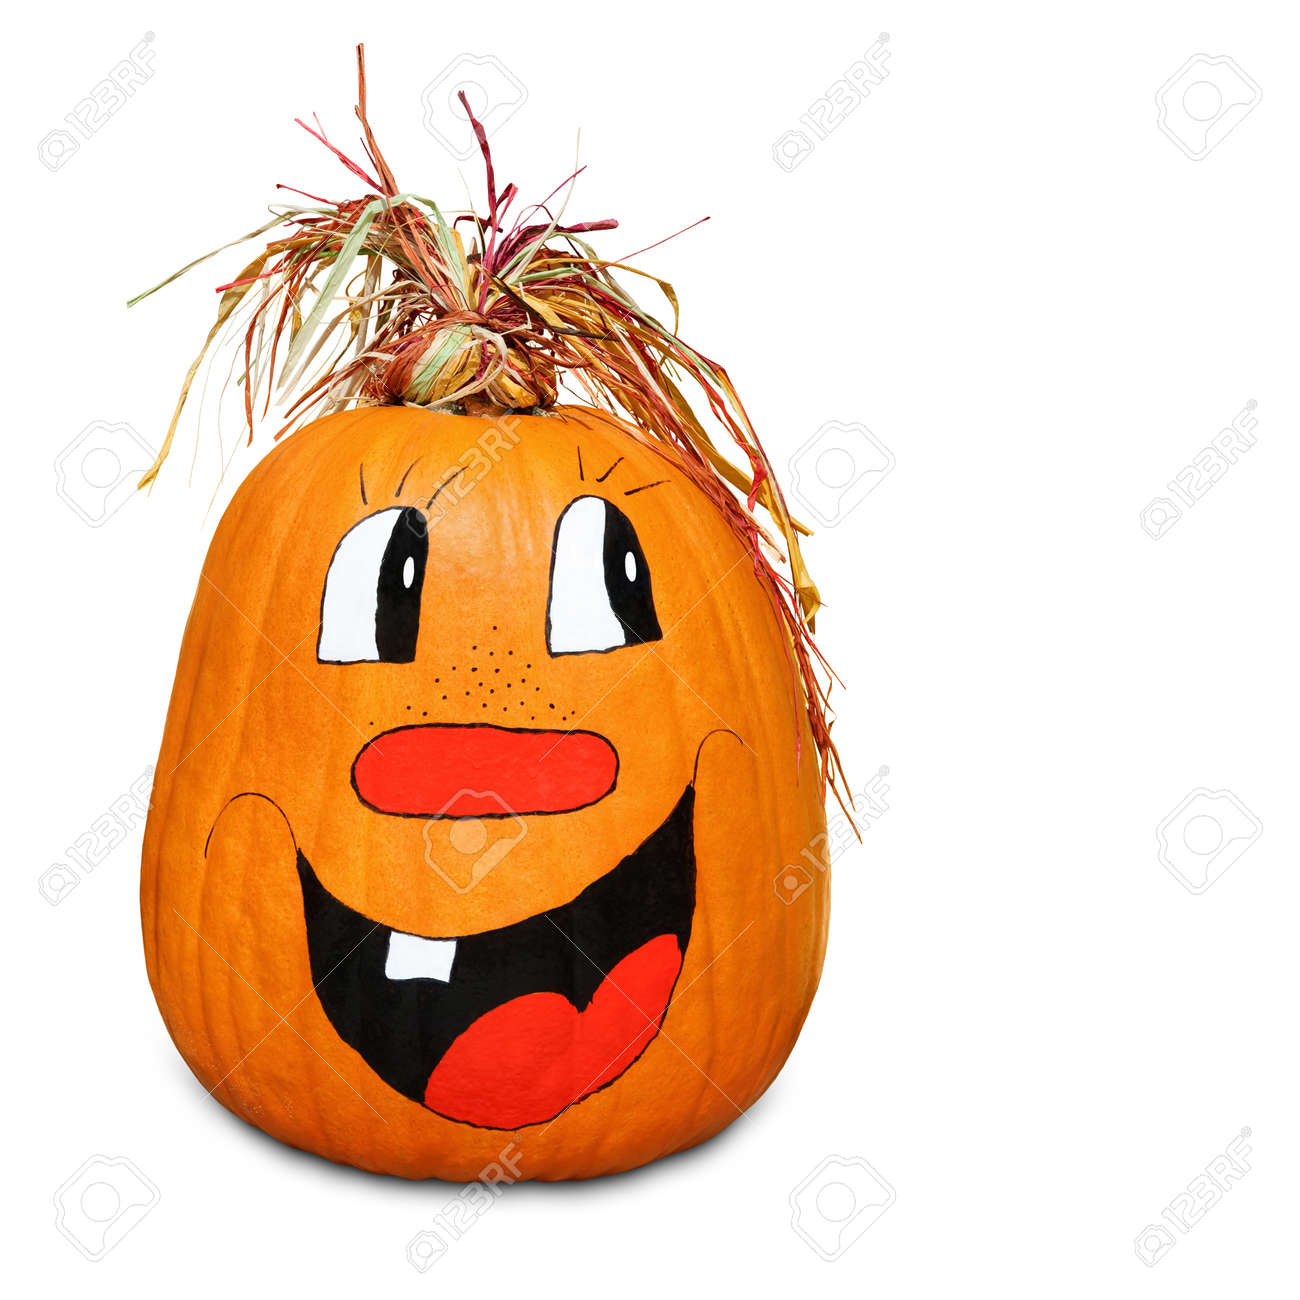 Isolated pumpkin with happy painted face and straw hair Stock Photo - 10280831